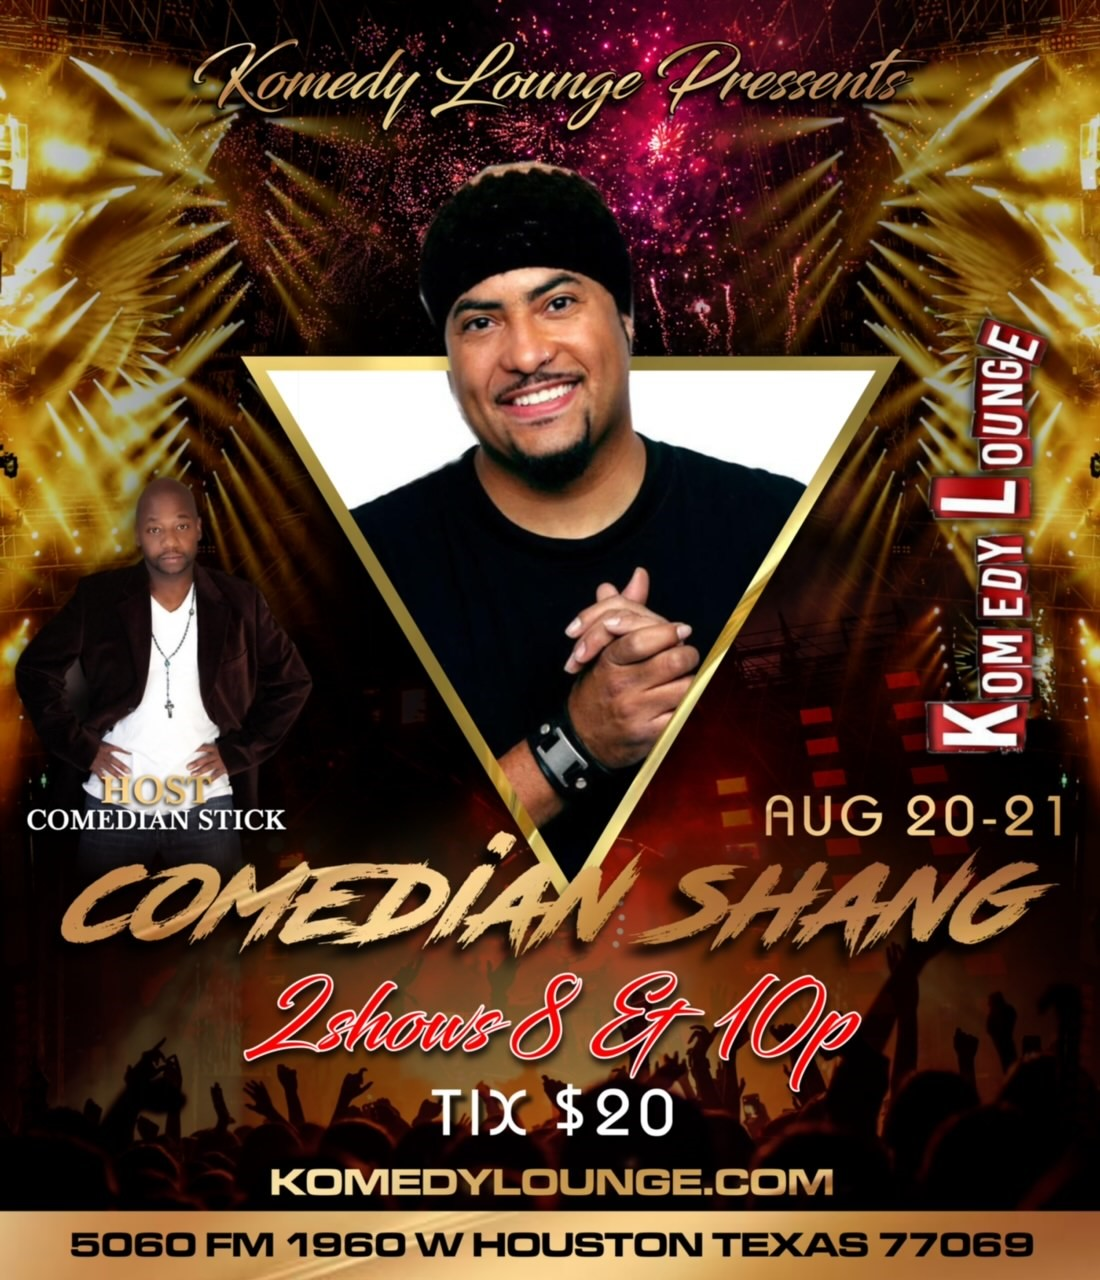 Comedian Shang 8pm  on Aug 20, 20:00@Komedy Lounge - Buy tickets and Get information on komedylounge.com